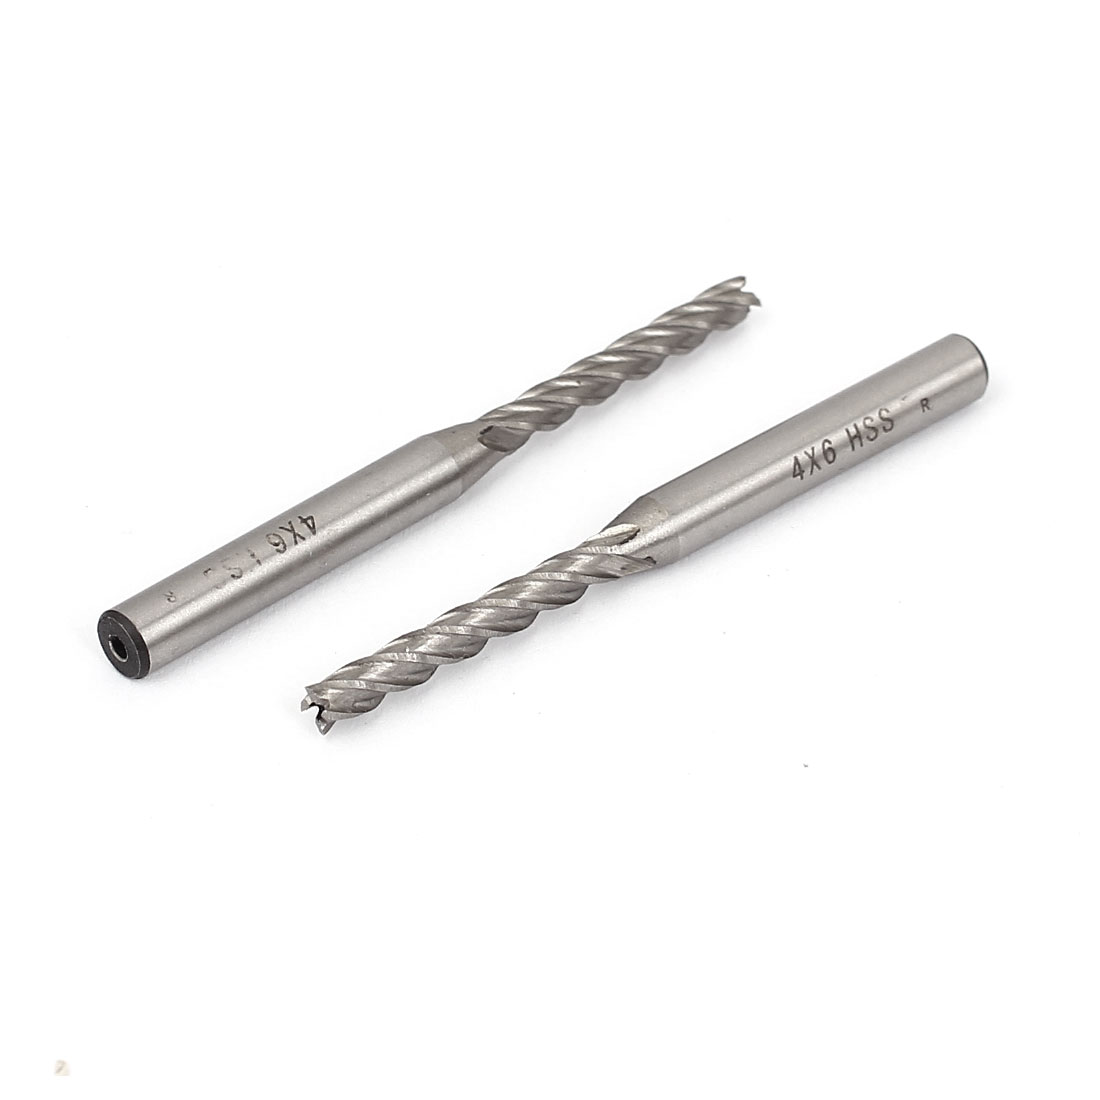 2pcs 4mmx6mm HSS 4 Flutes Straight Shank End Mill Cutter CNC Drill Bits